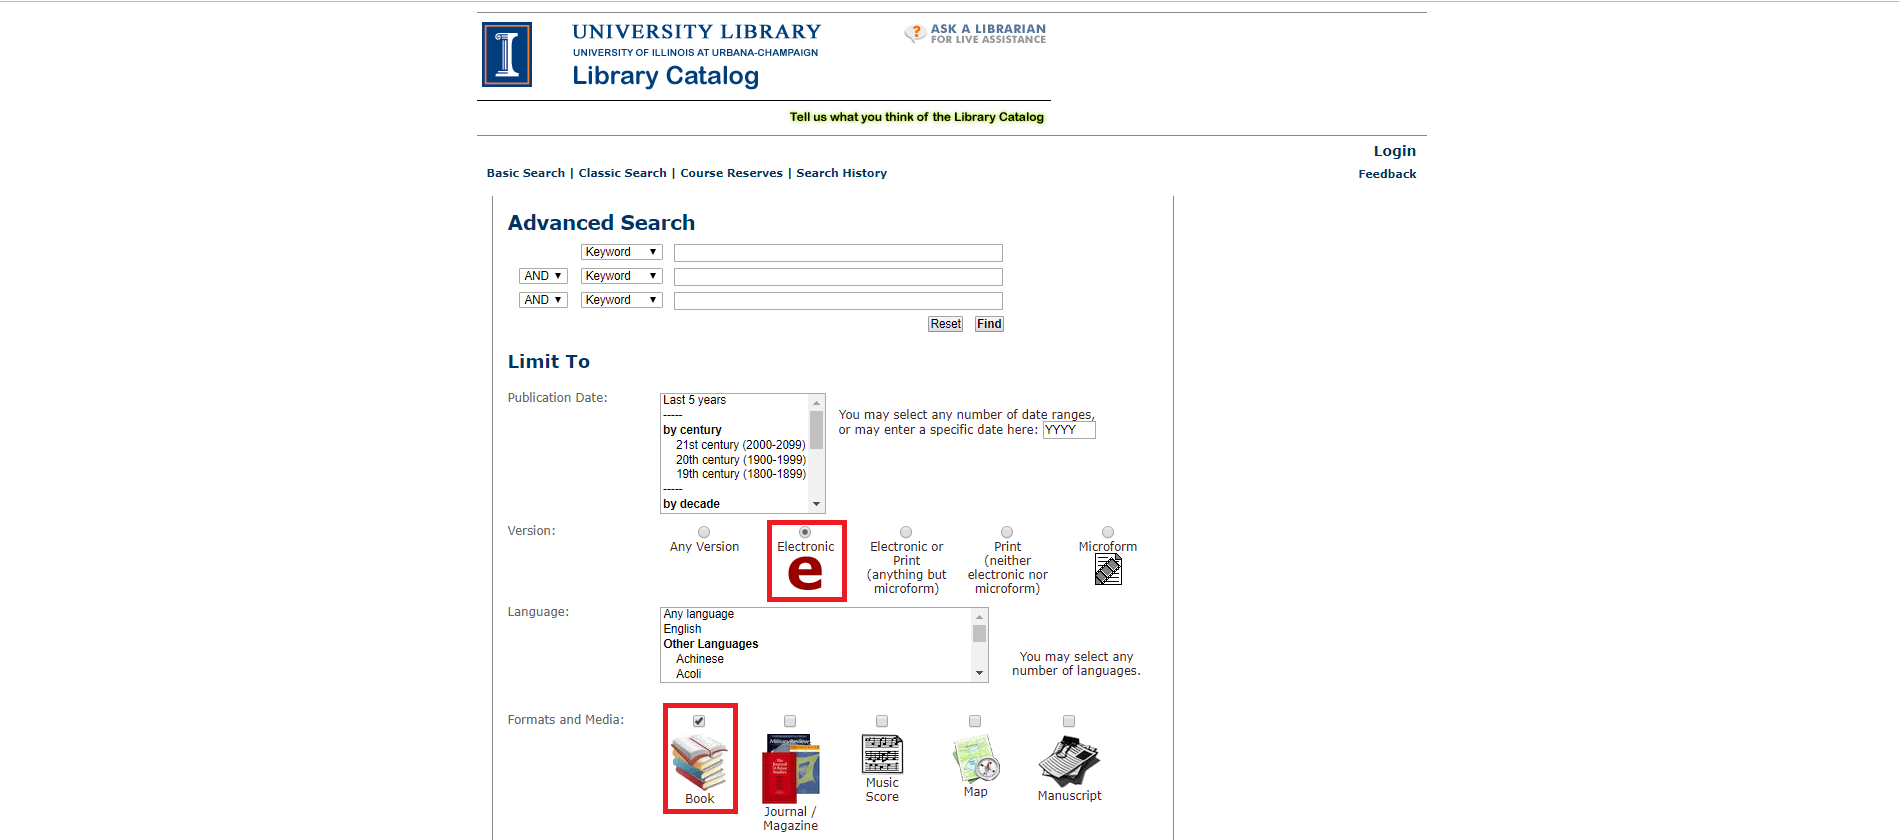 Red rectangles highlight the Electronic and Book options on the Advanced Search page of the Library Catalog